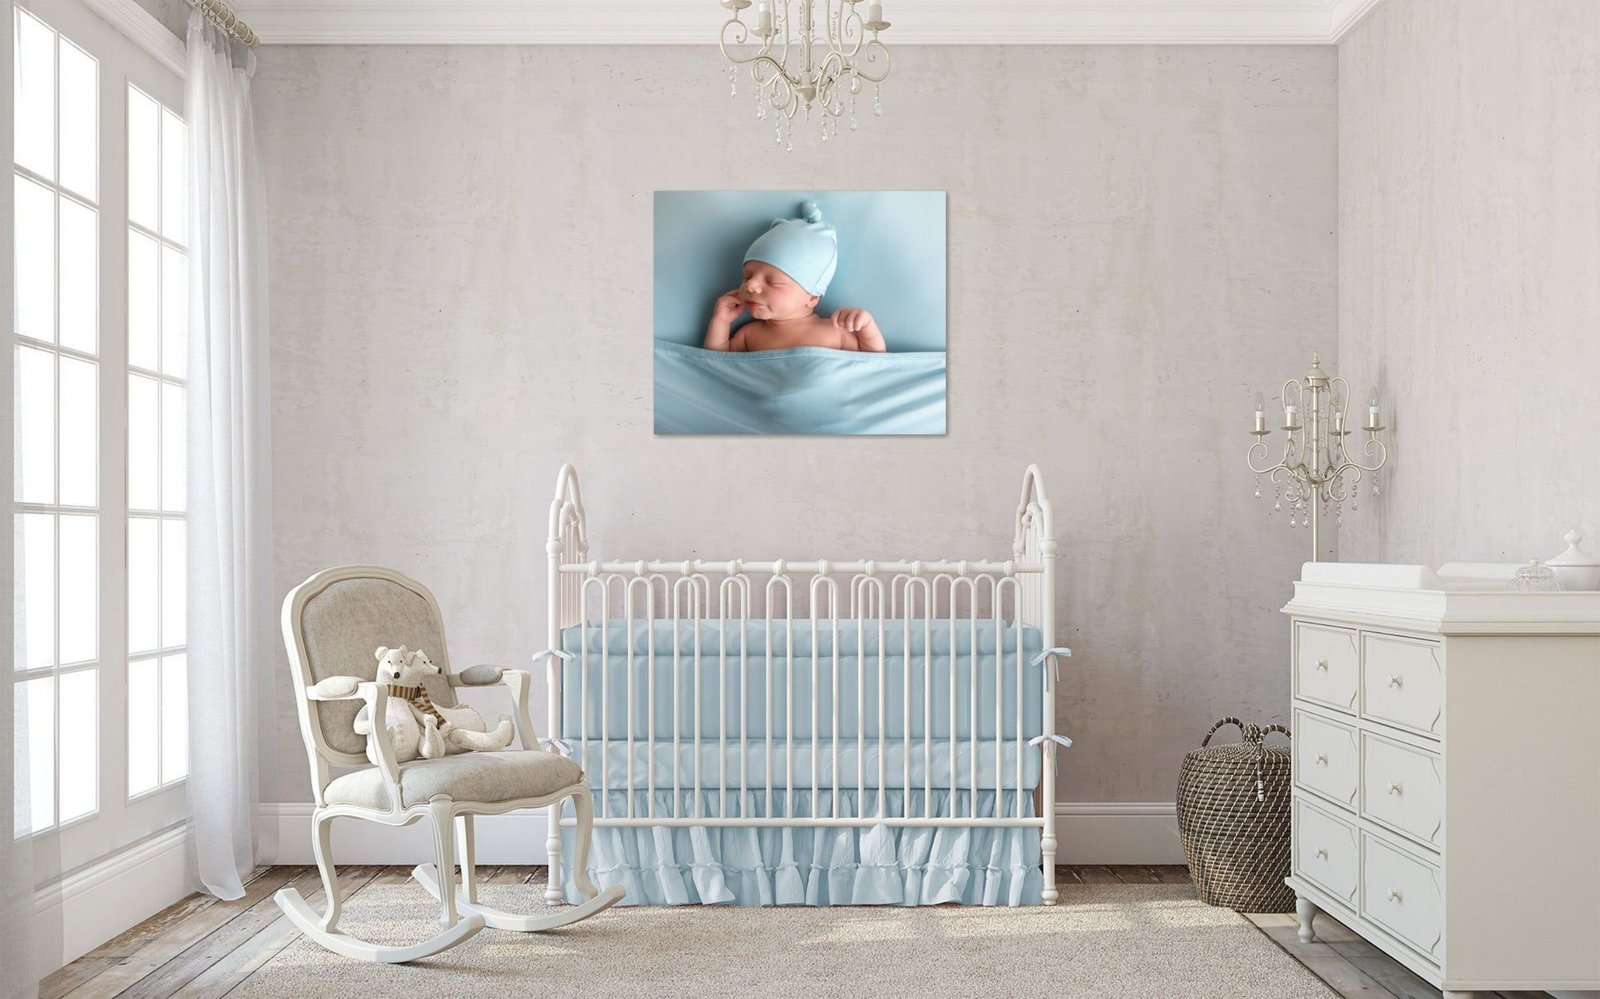 Image of a nursery with a portrait of a newborn baby boy on the wall